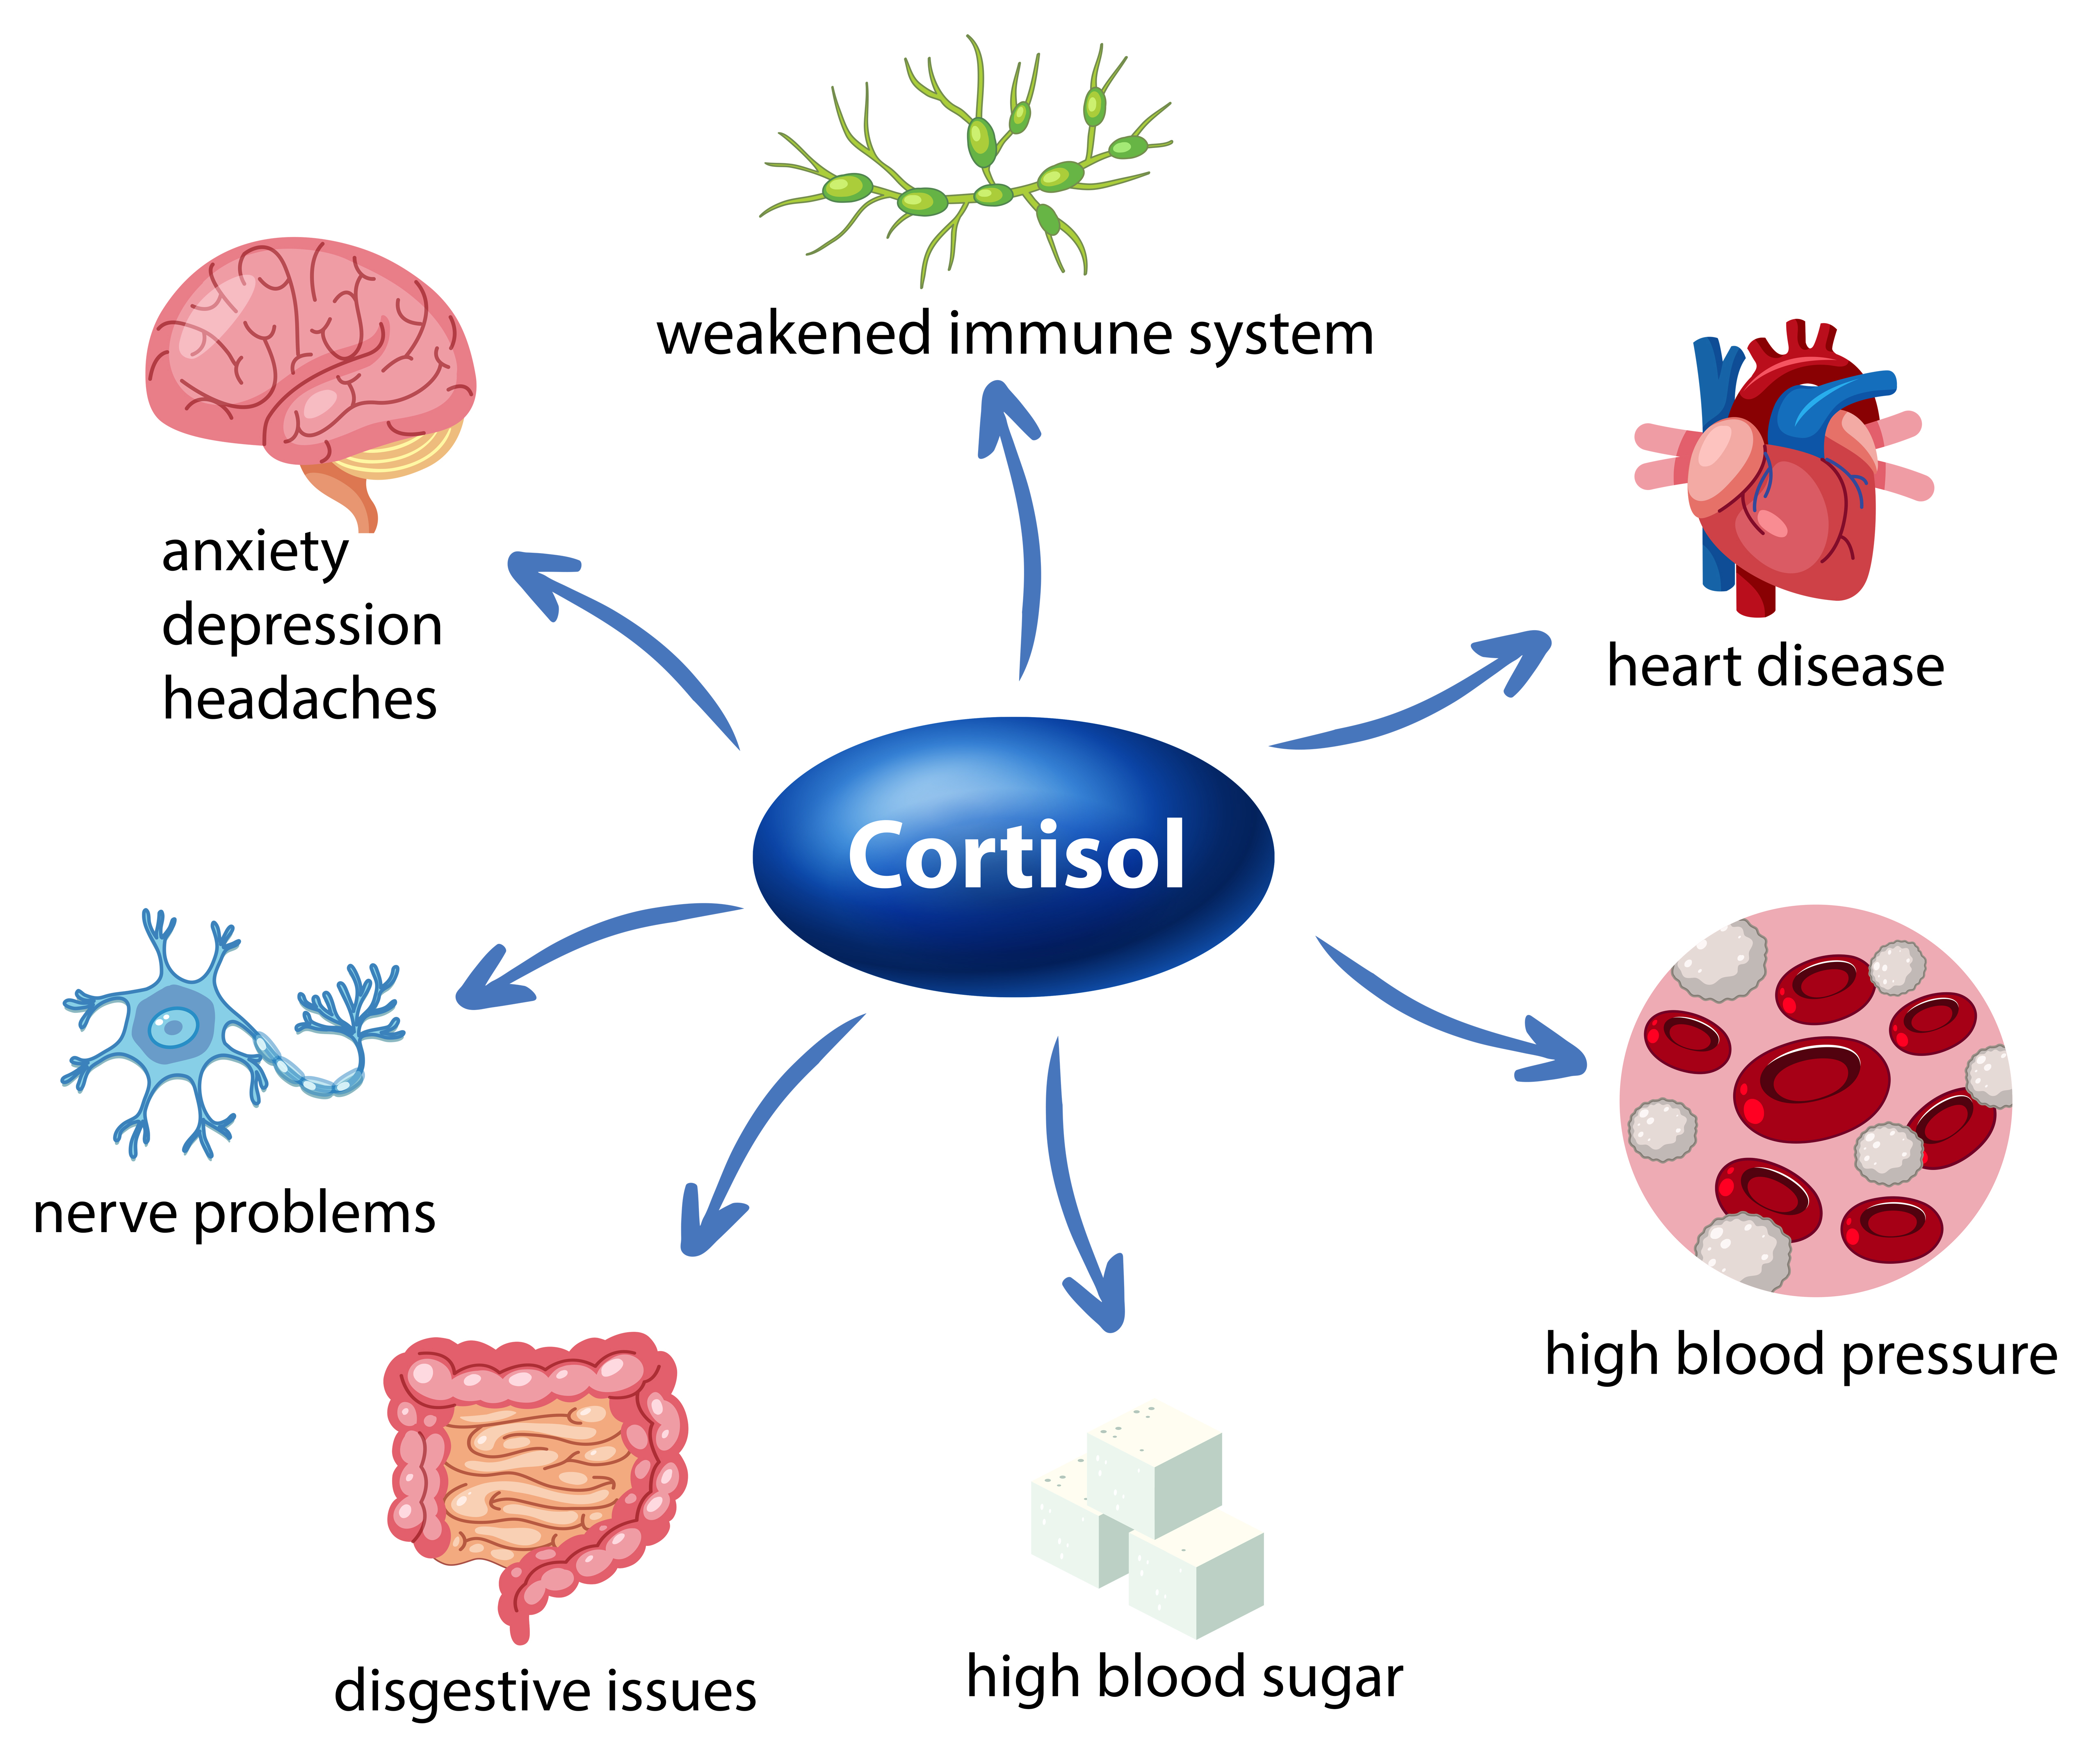 Effects of excessive cortisol level